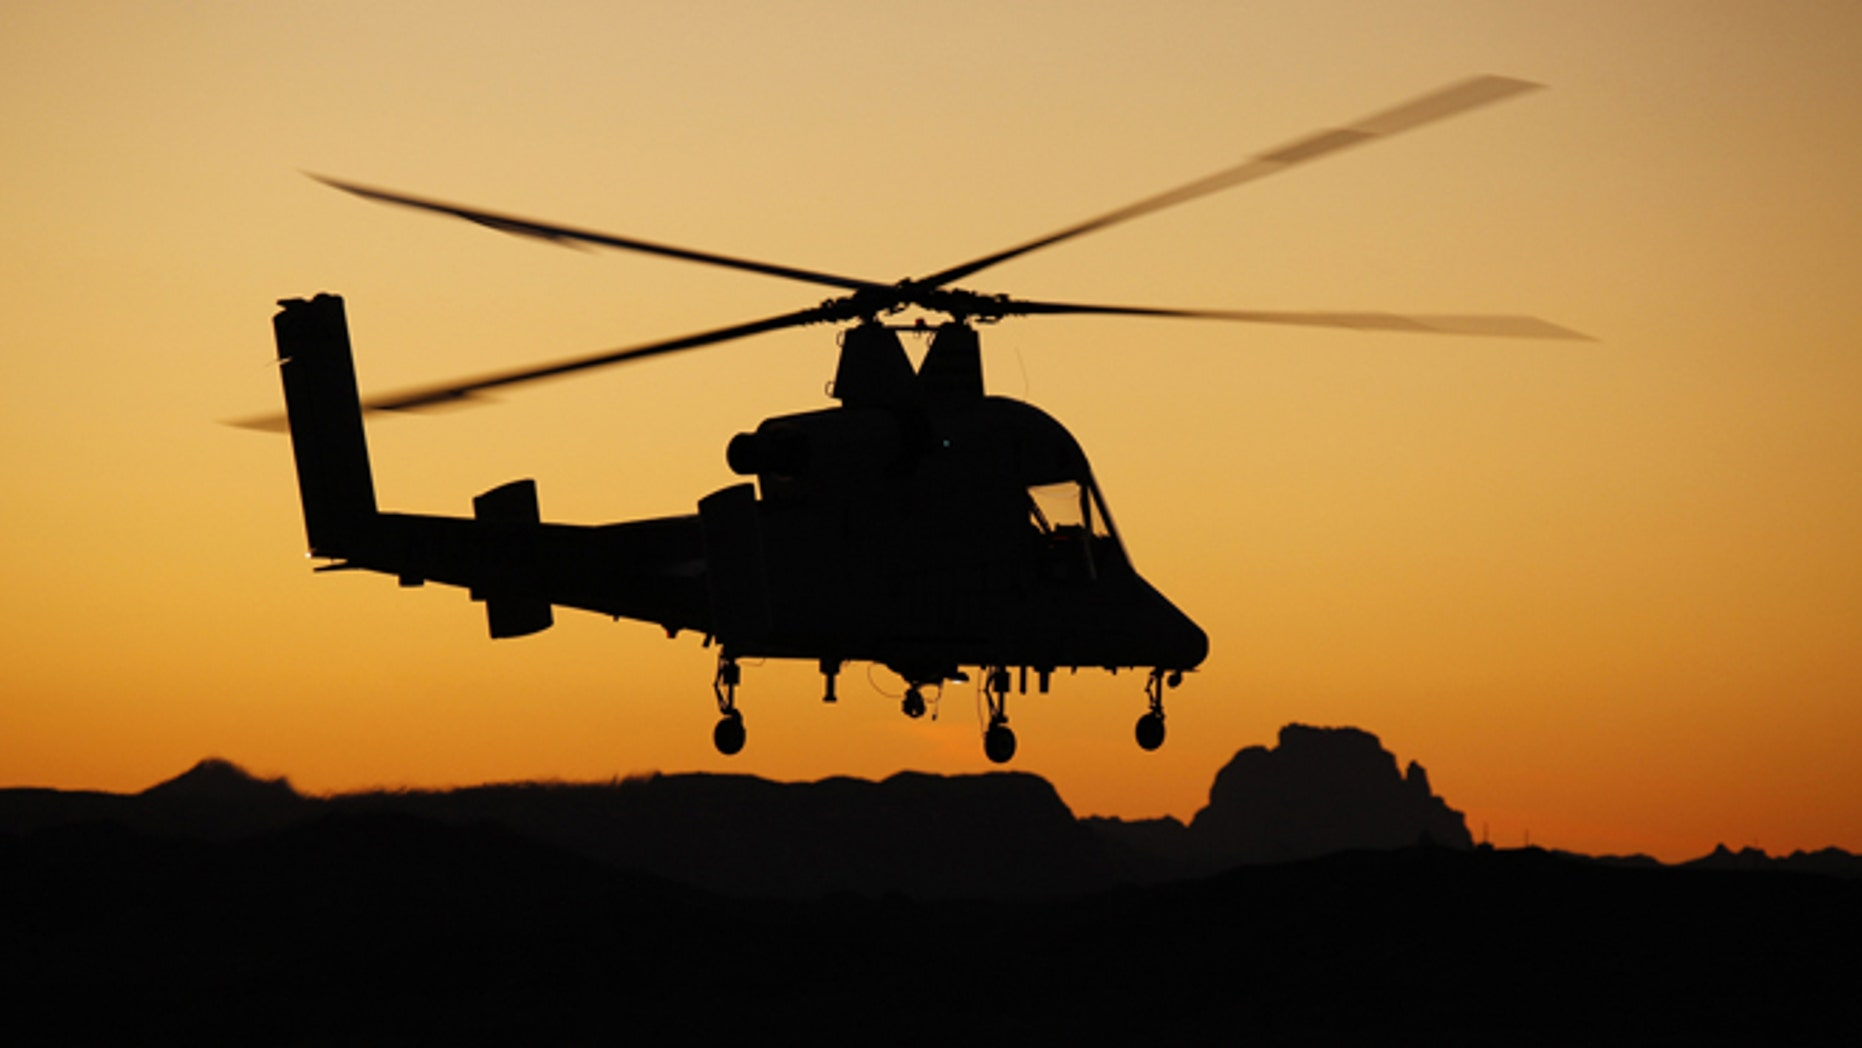 An unmanned K-MAX helicopter that is being used to deliver cargo and resupply troops in combat zones.